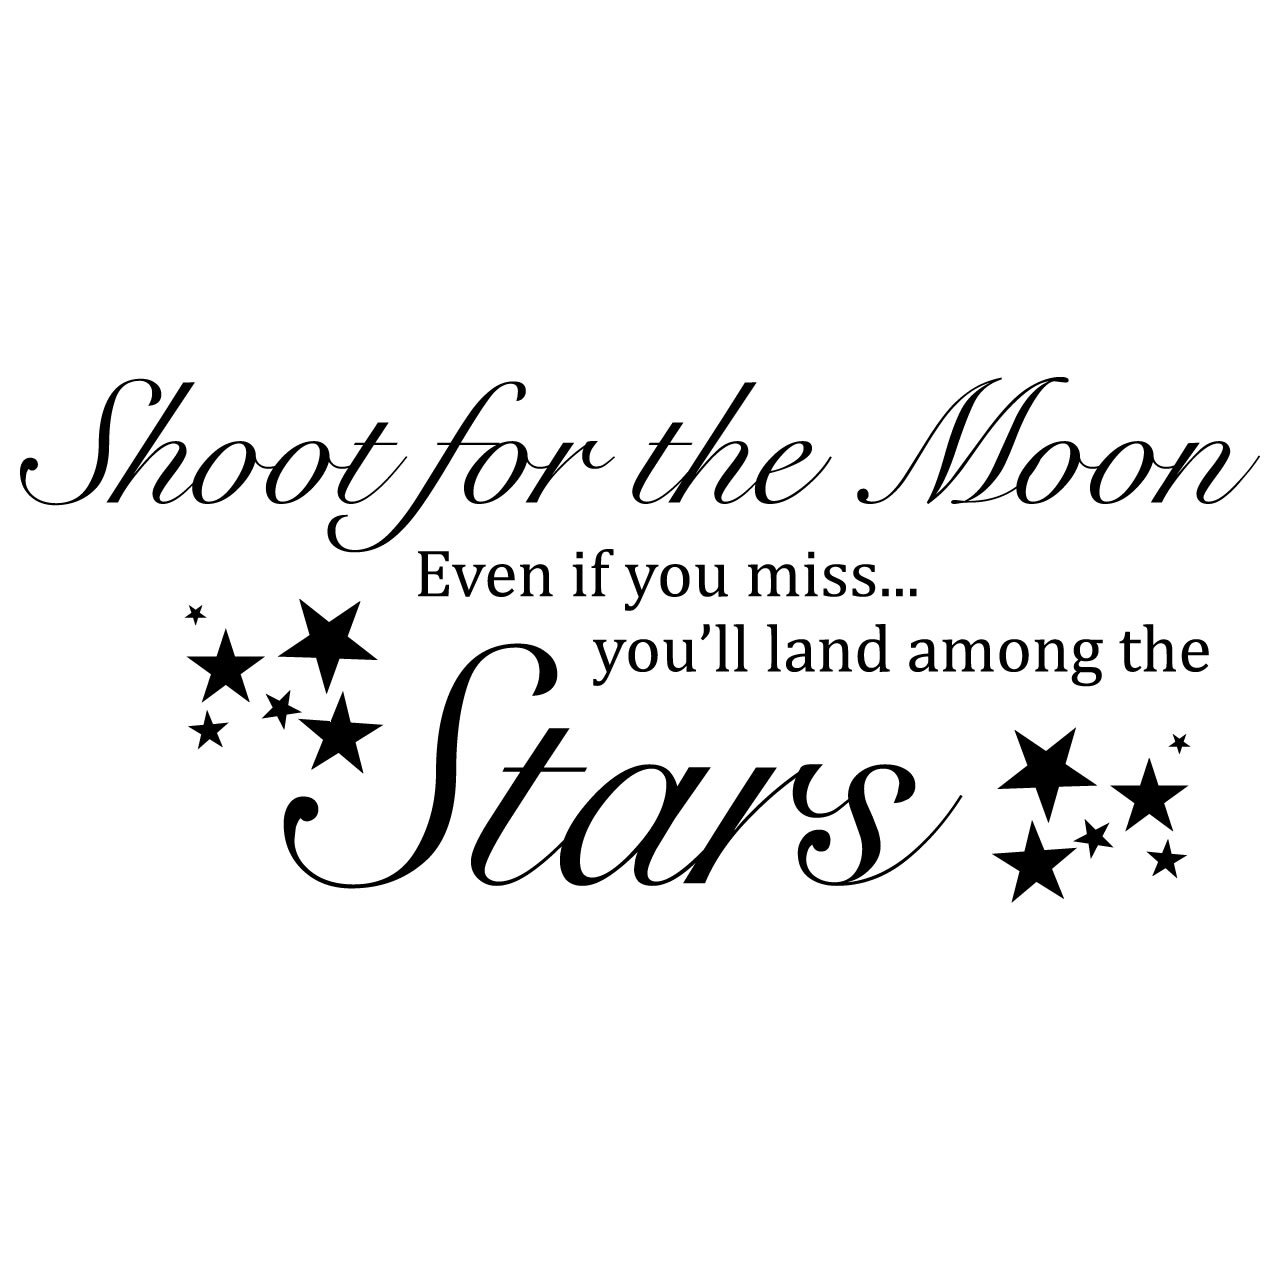 Quotes Wall Sticker Shoot For The Moon Quote Wall Sticker World Of Wall Stickers